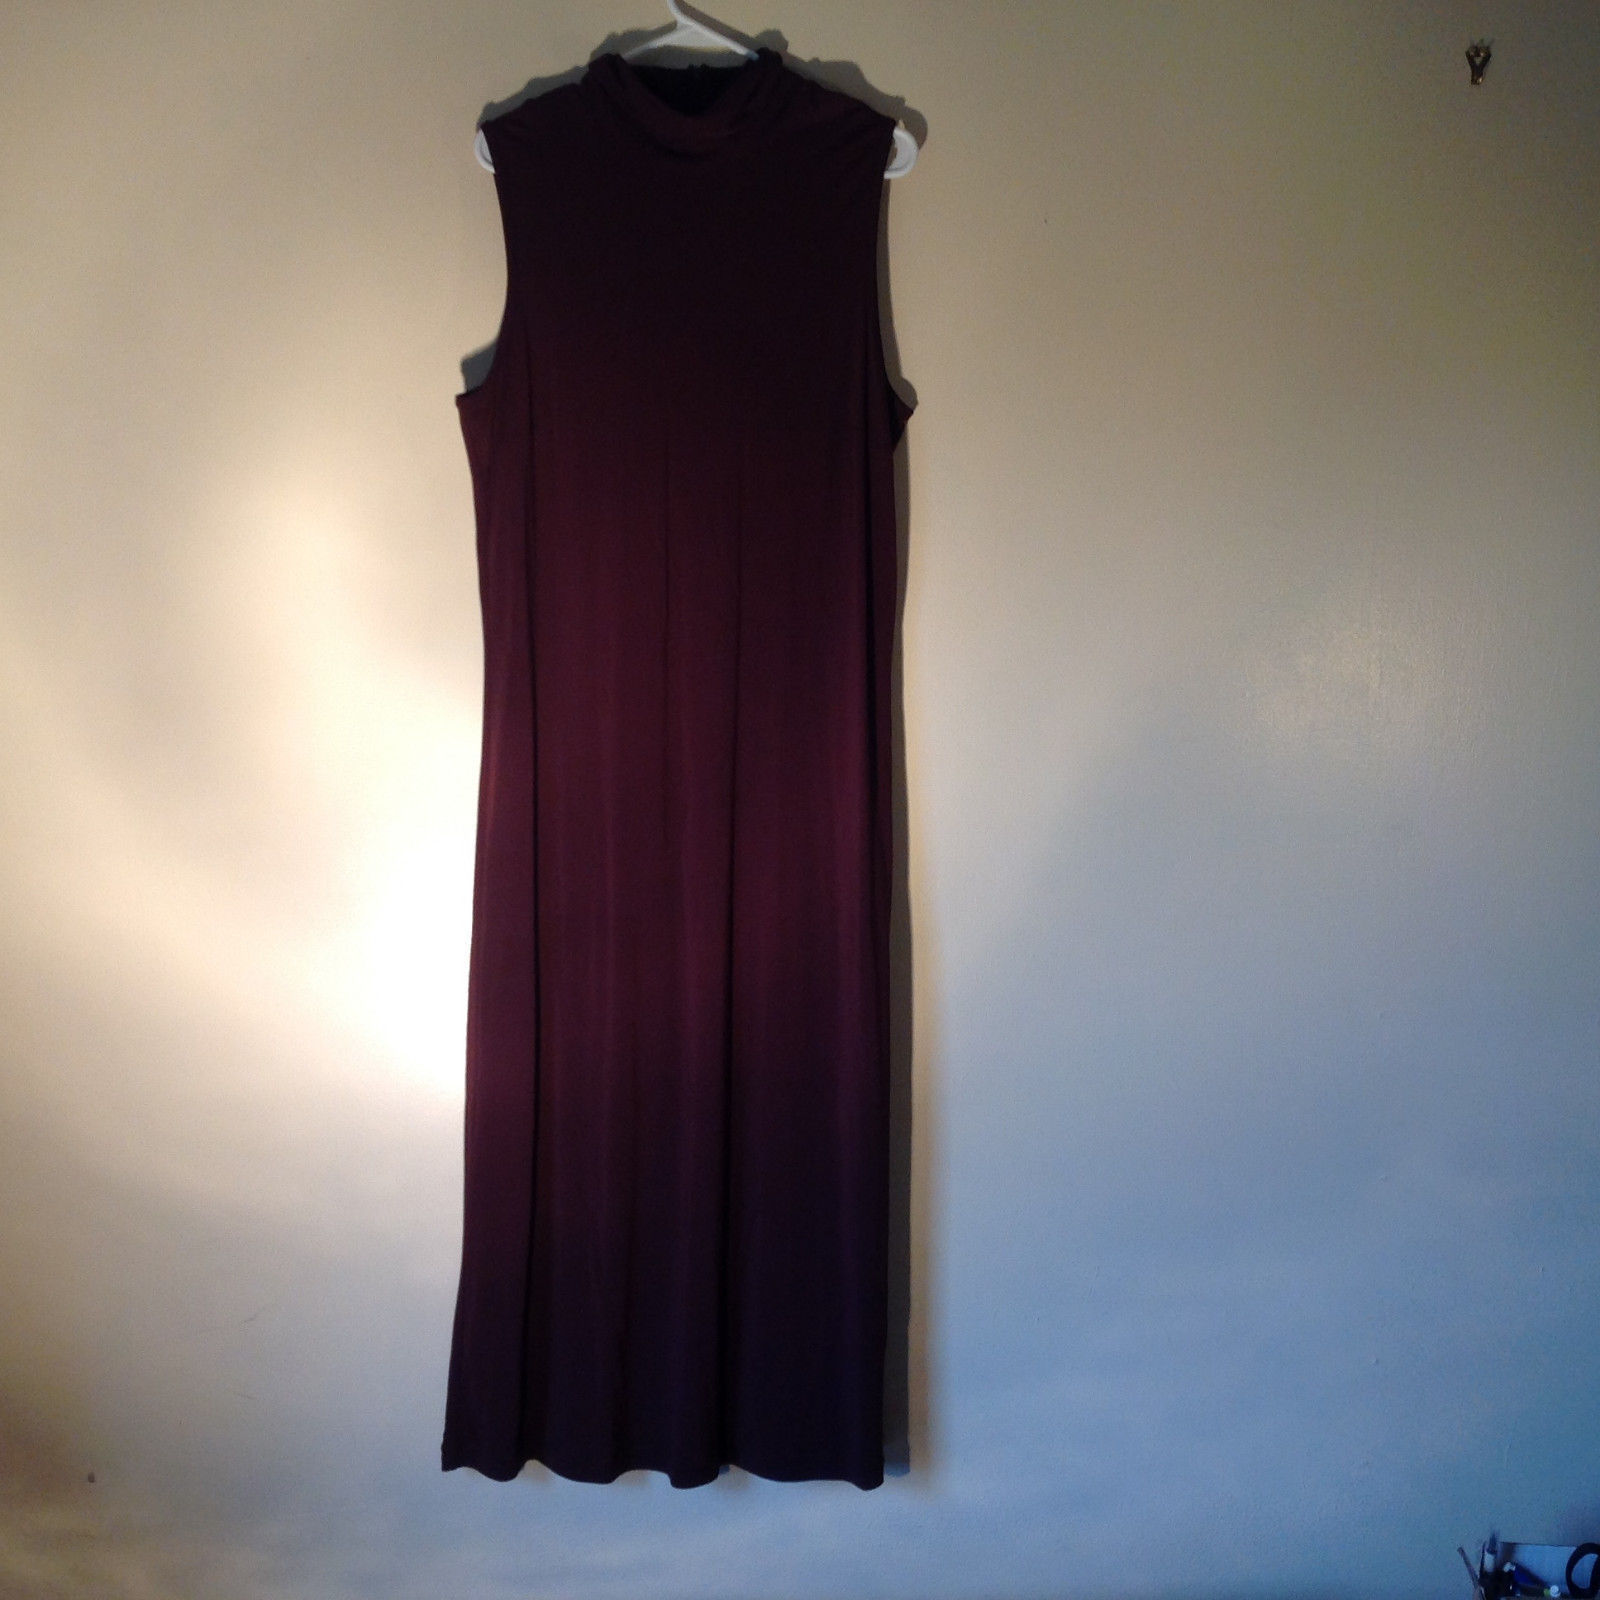 Purple Sleeveless Turtleneck Long Formal Dress By J Jill Size XL Petite